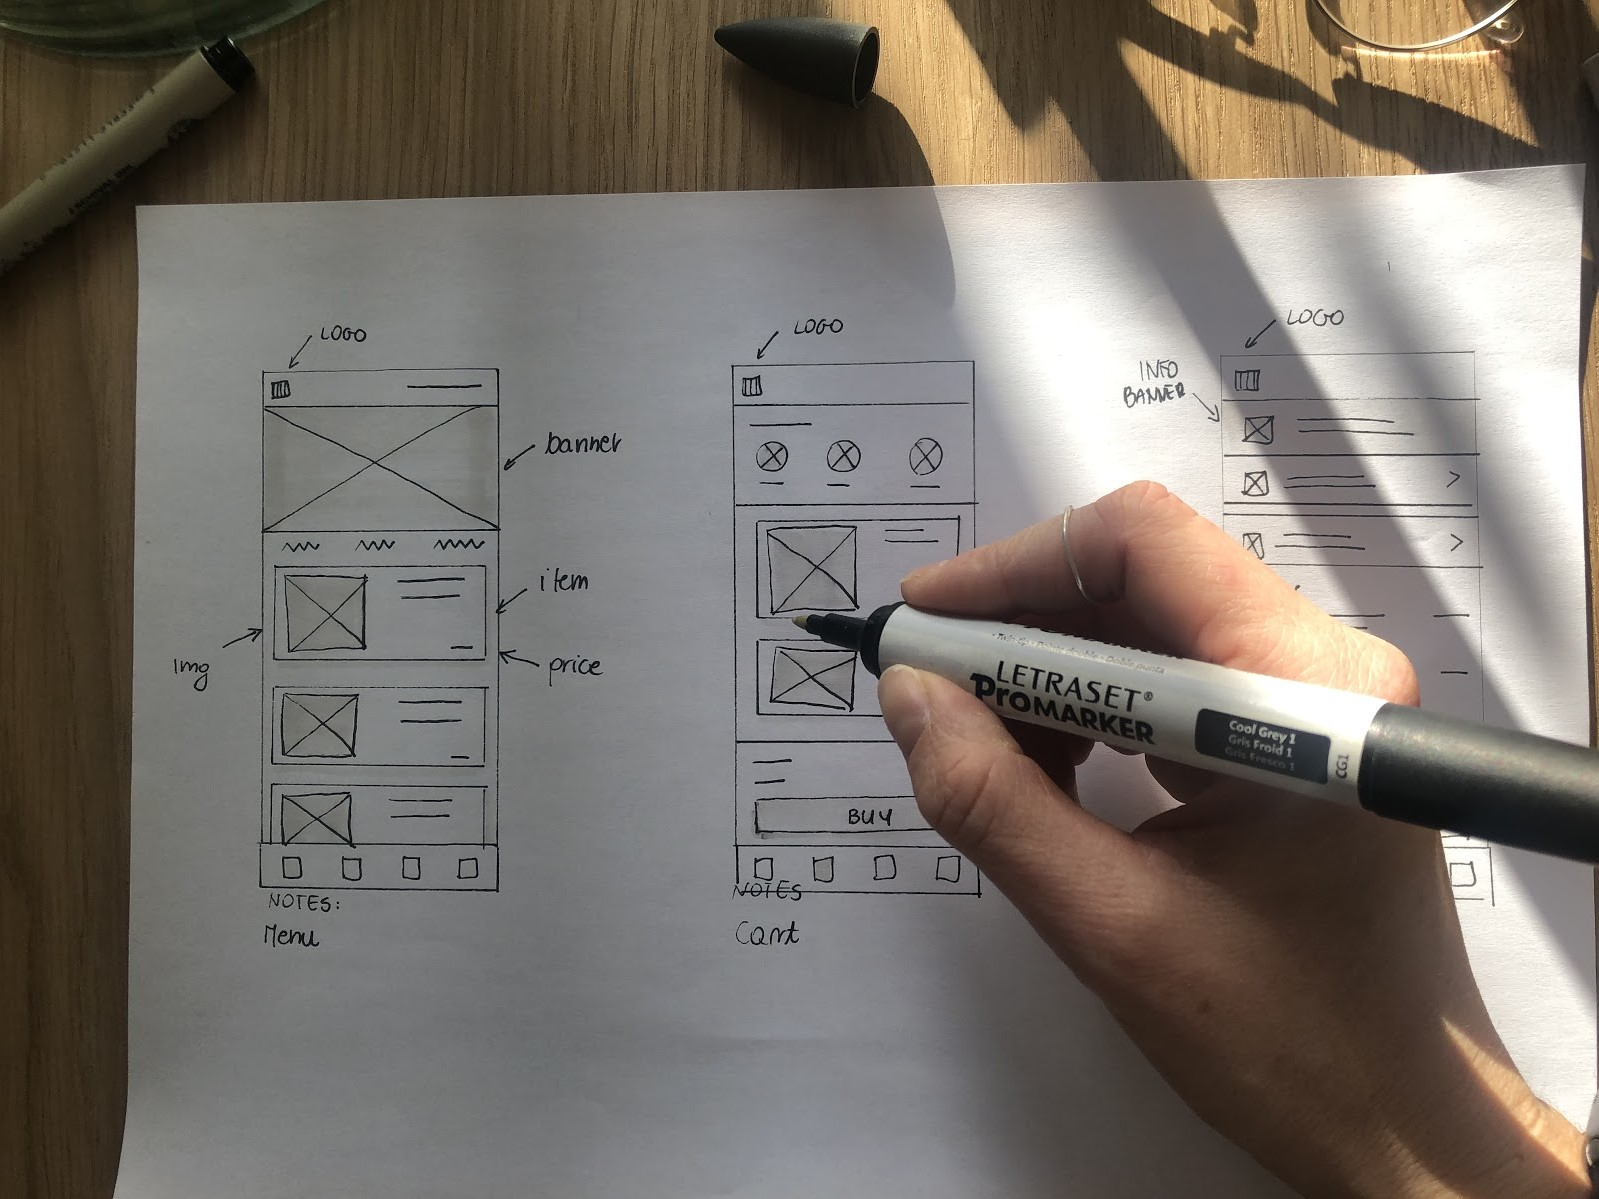 Example of the paper wireframes